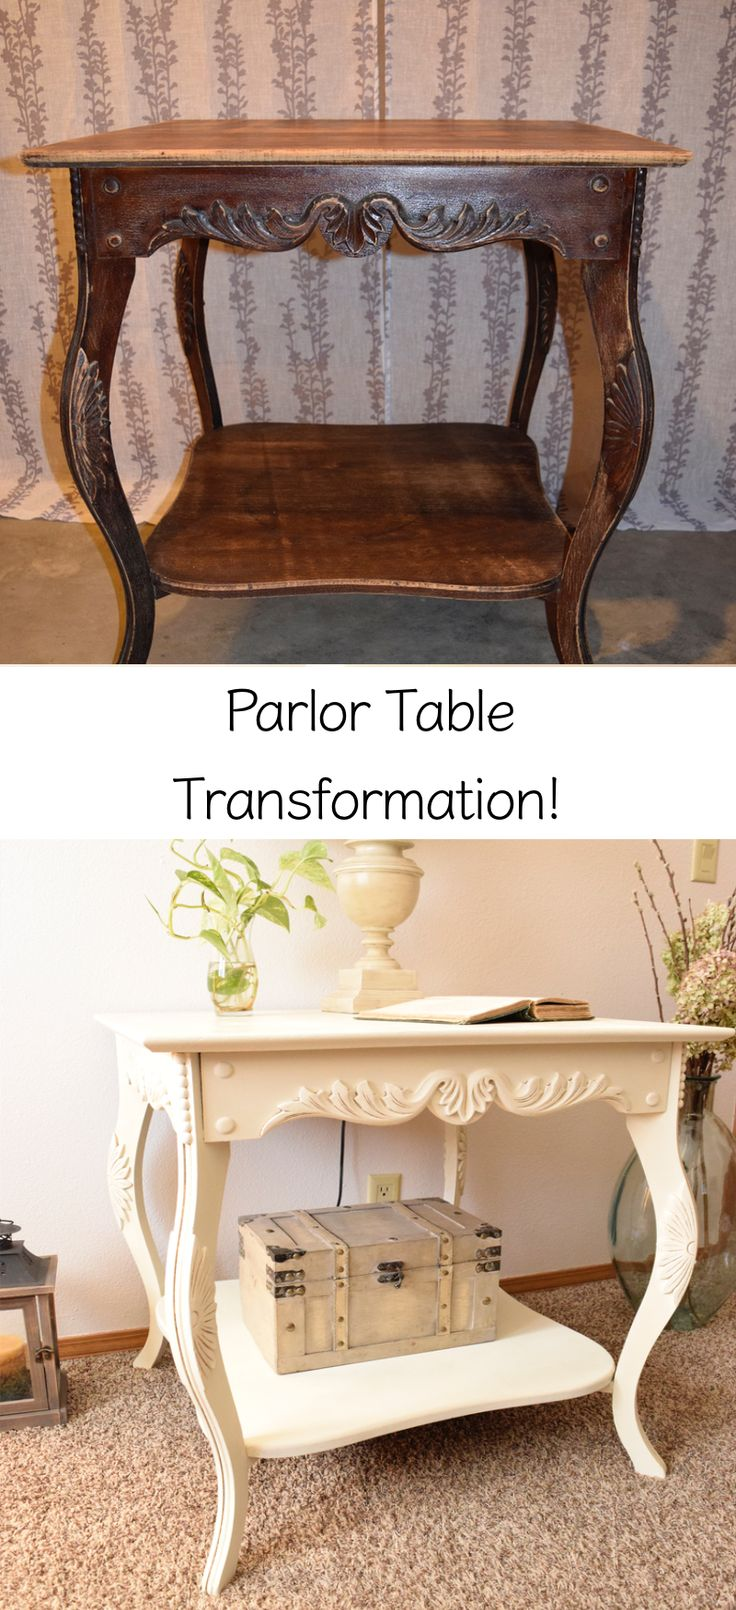 Painted Tables 1408 best tables images on pinterest | furniture makeover, painted